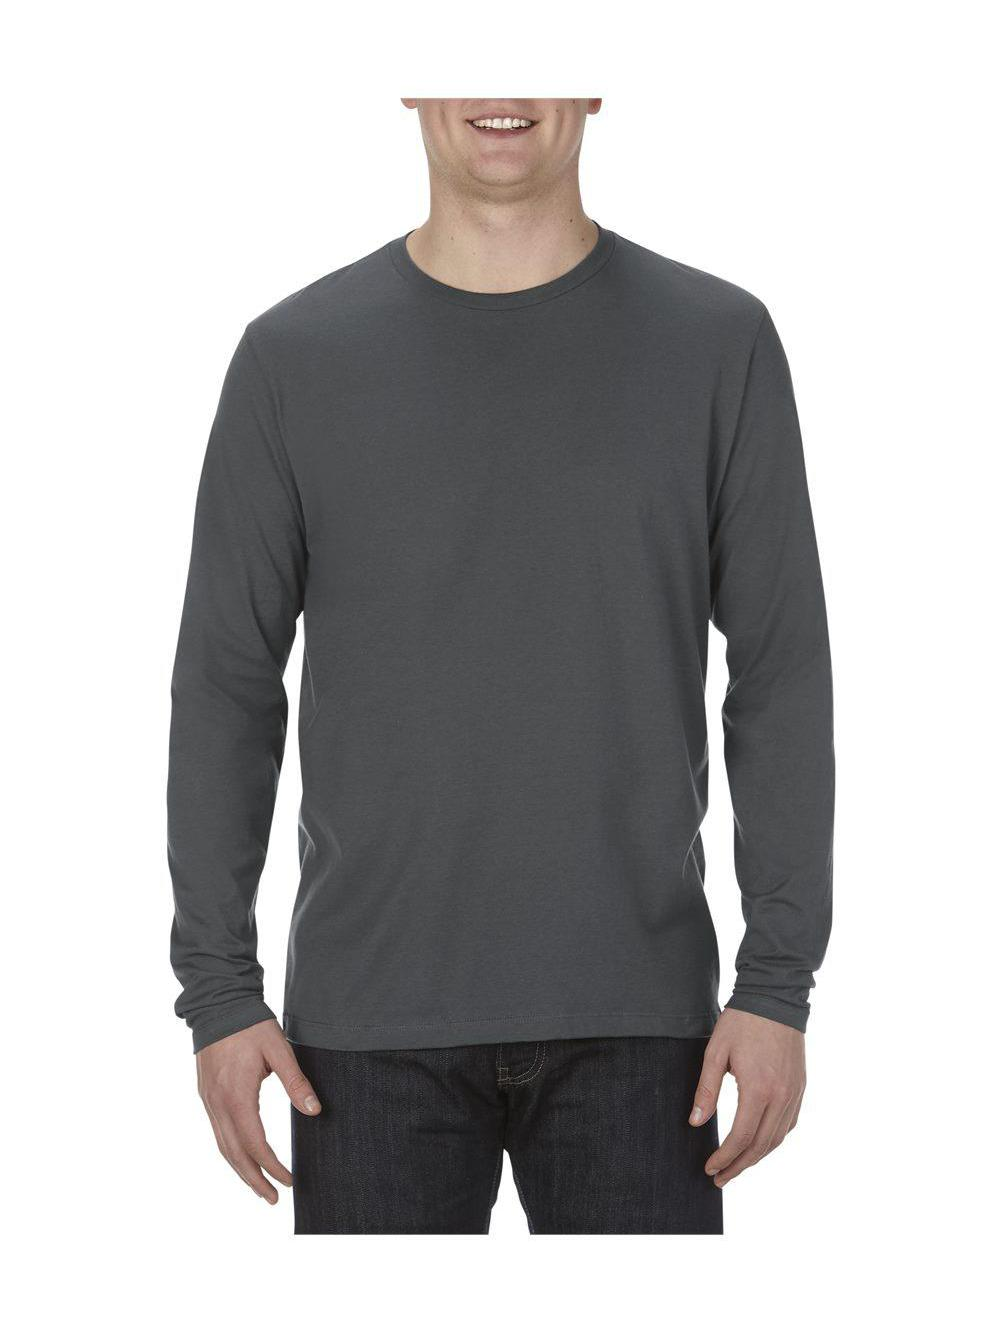 ALSTYLE-Ultimate-Long-Sleeve-T-Shirt-5304 thumbnail 7